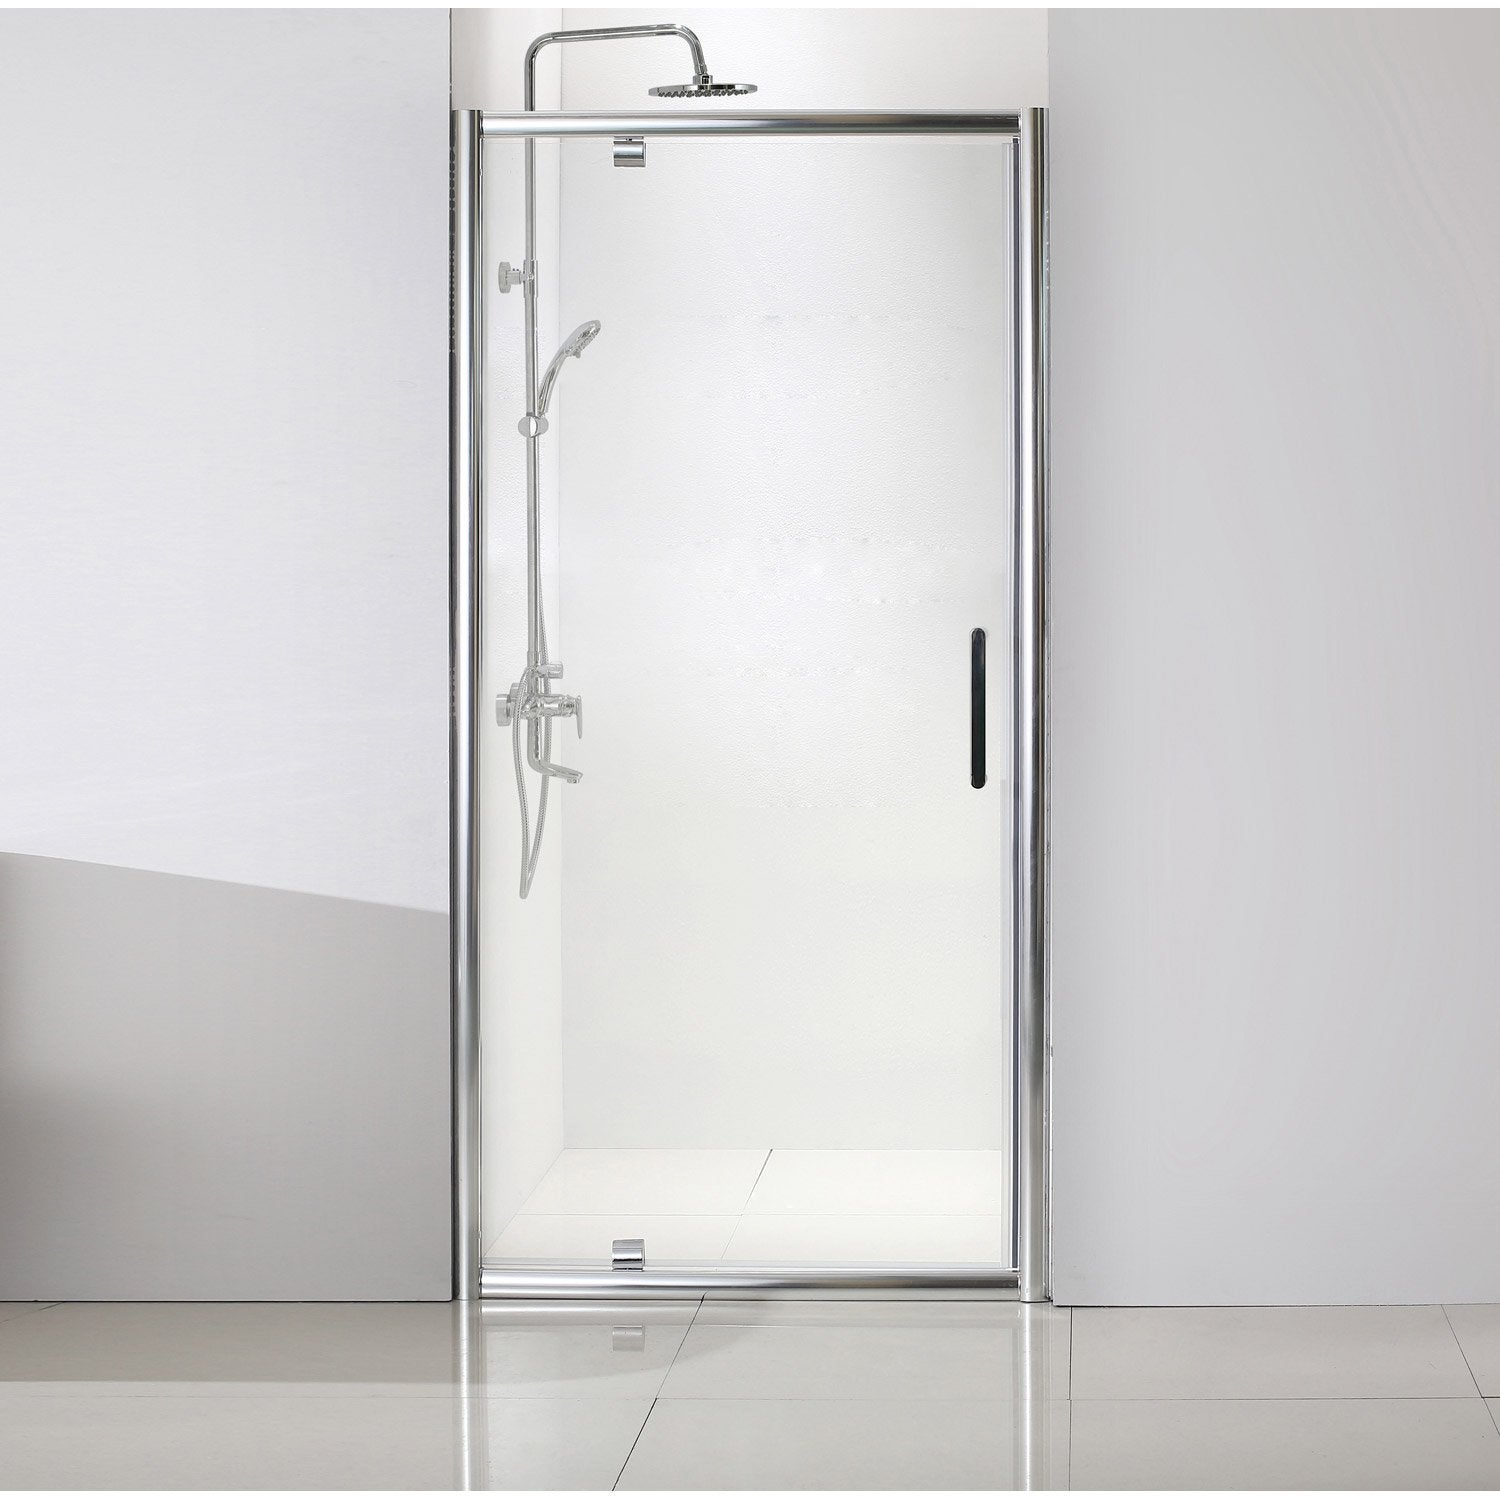 porte de douche pivotante 80 cm transparent quad leroy merlin. Black Bedroom Furniture Sets. Home Design Ideas